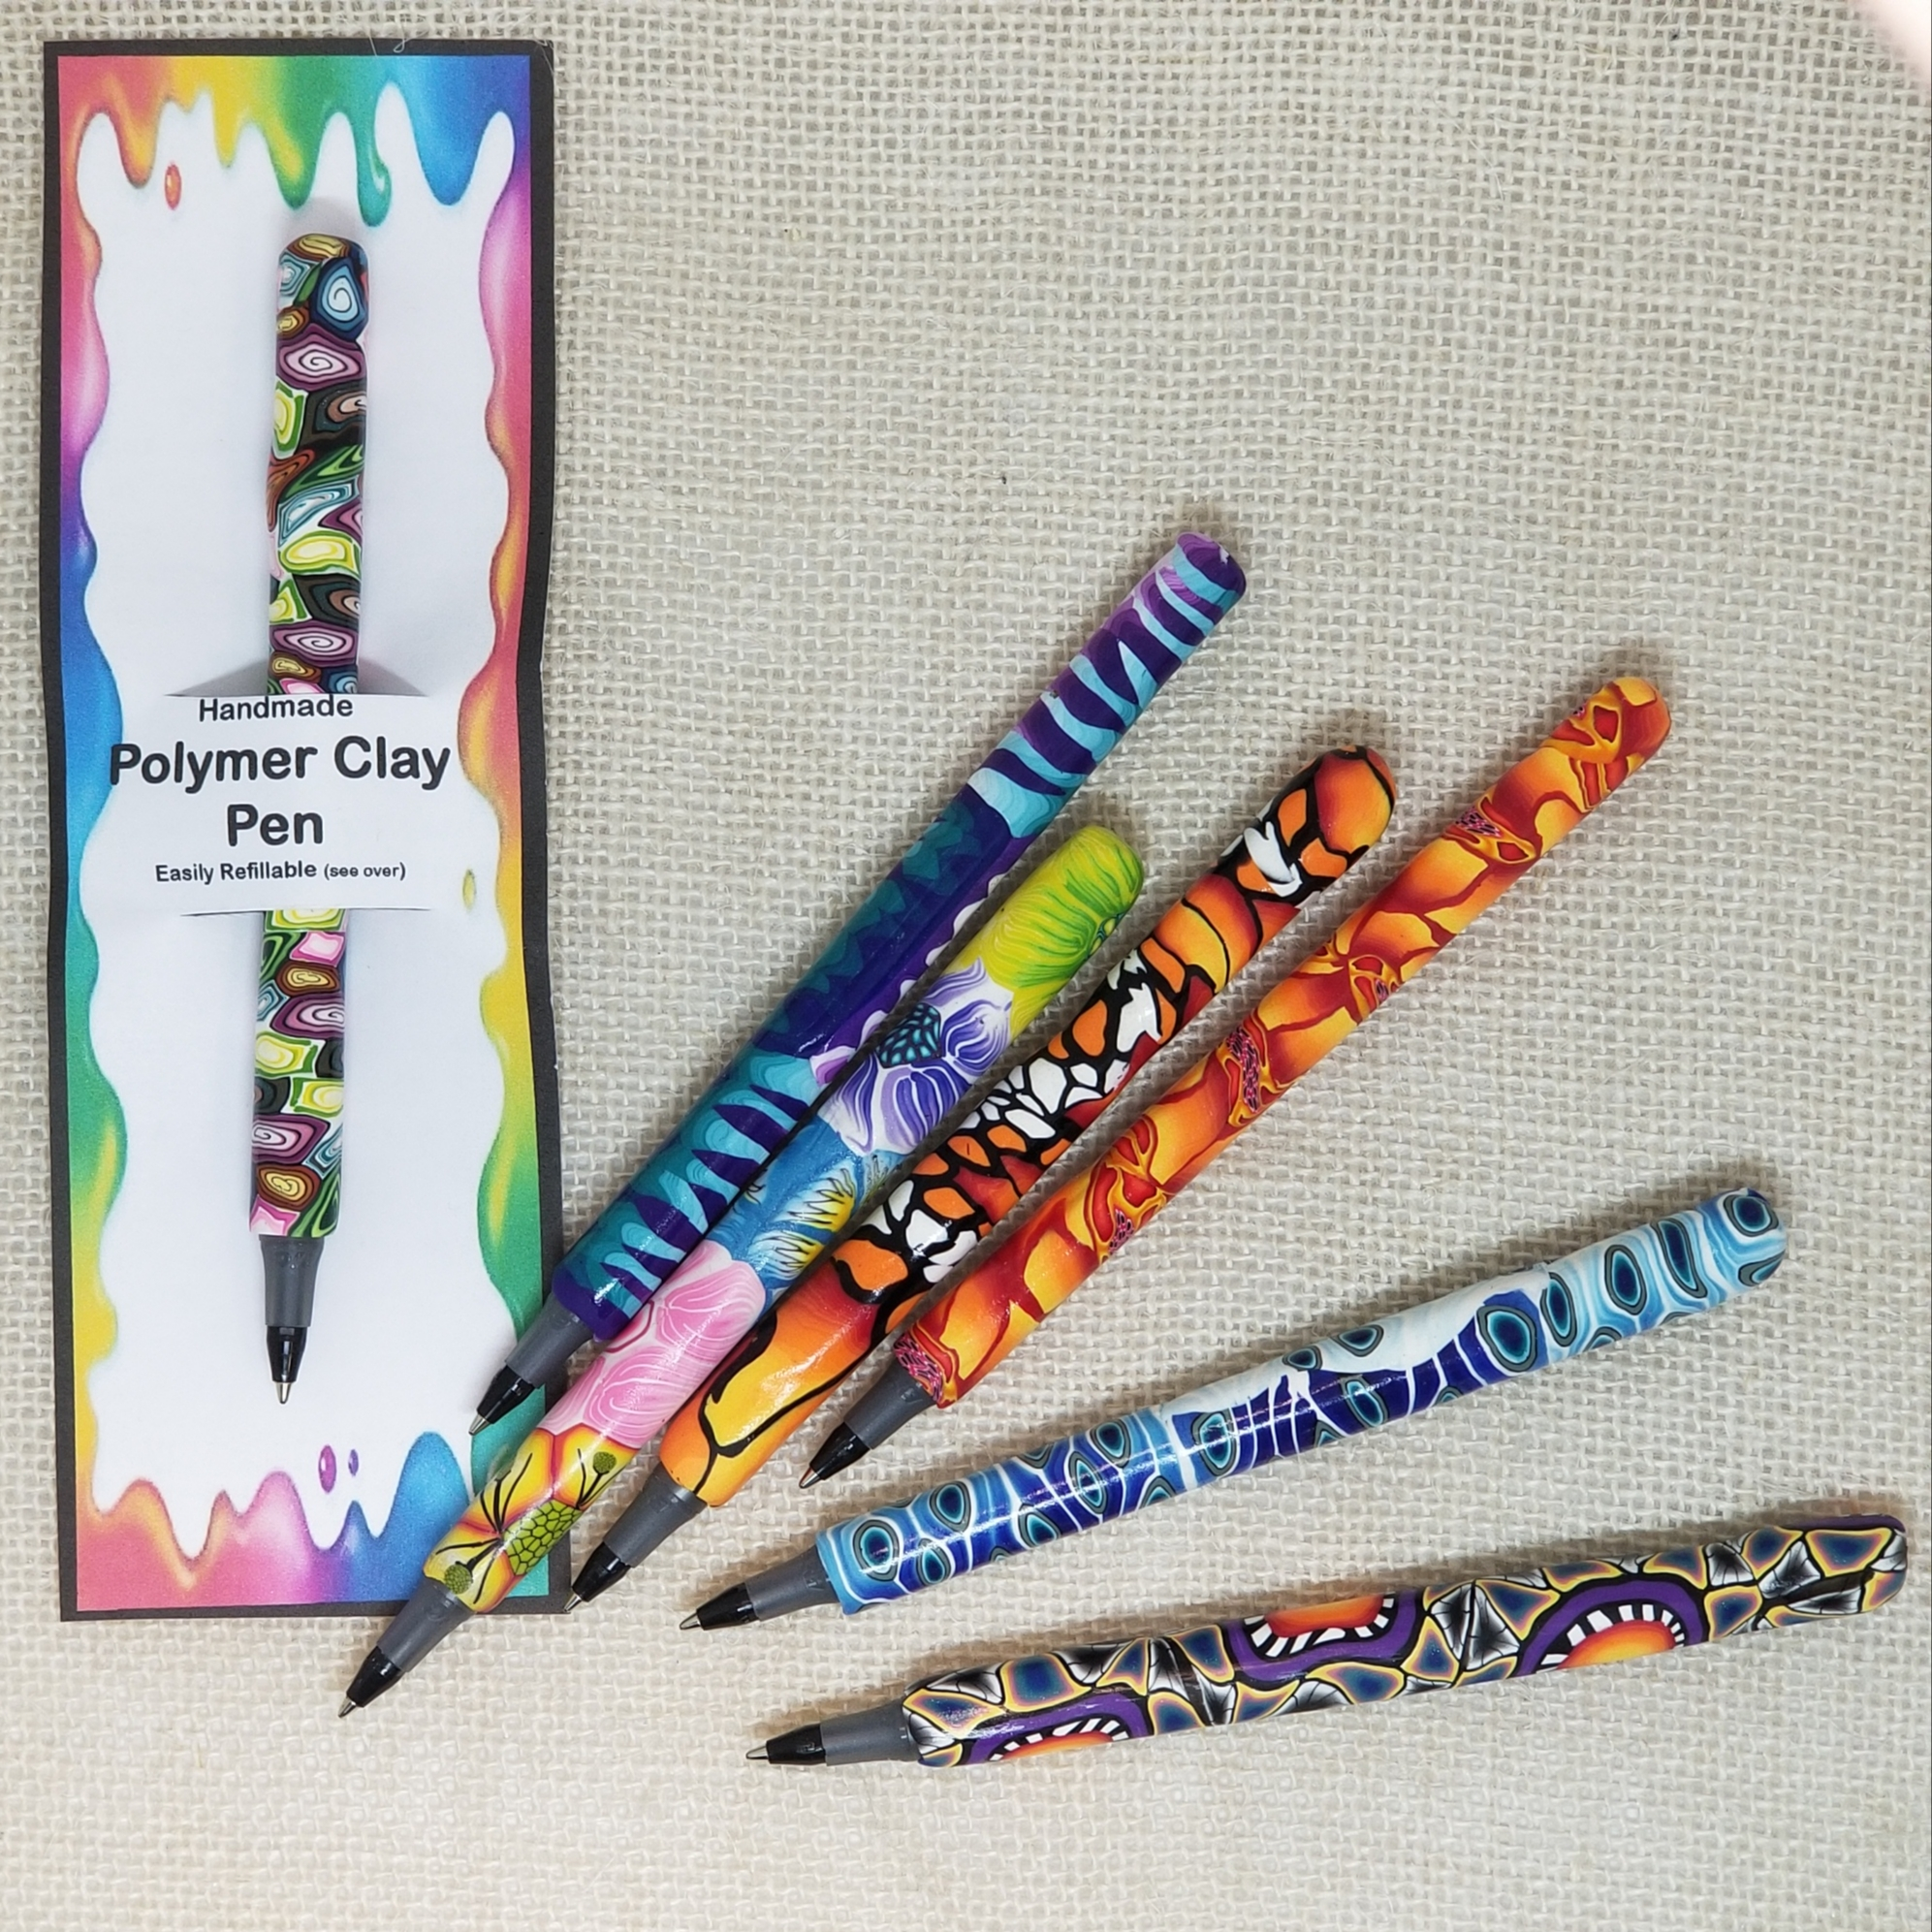 977-Pens - Polymer Clay